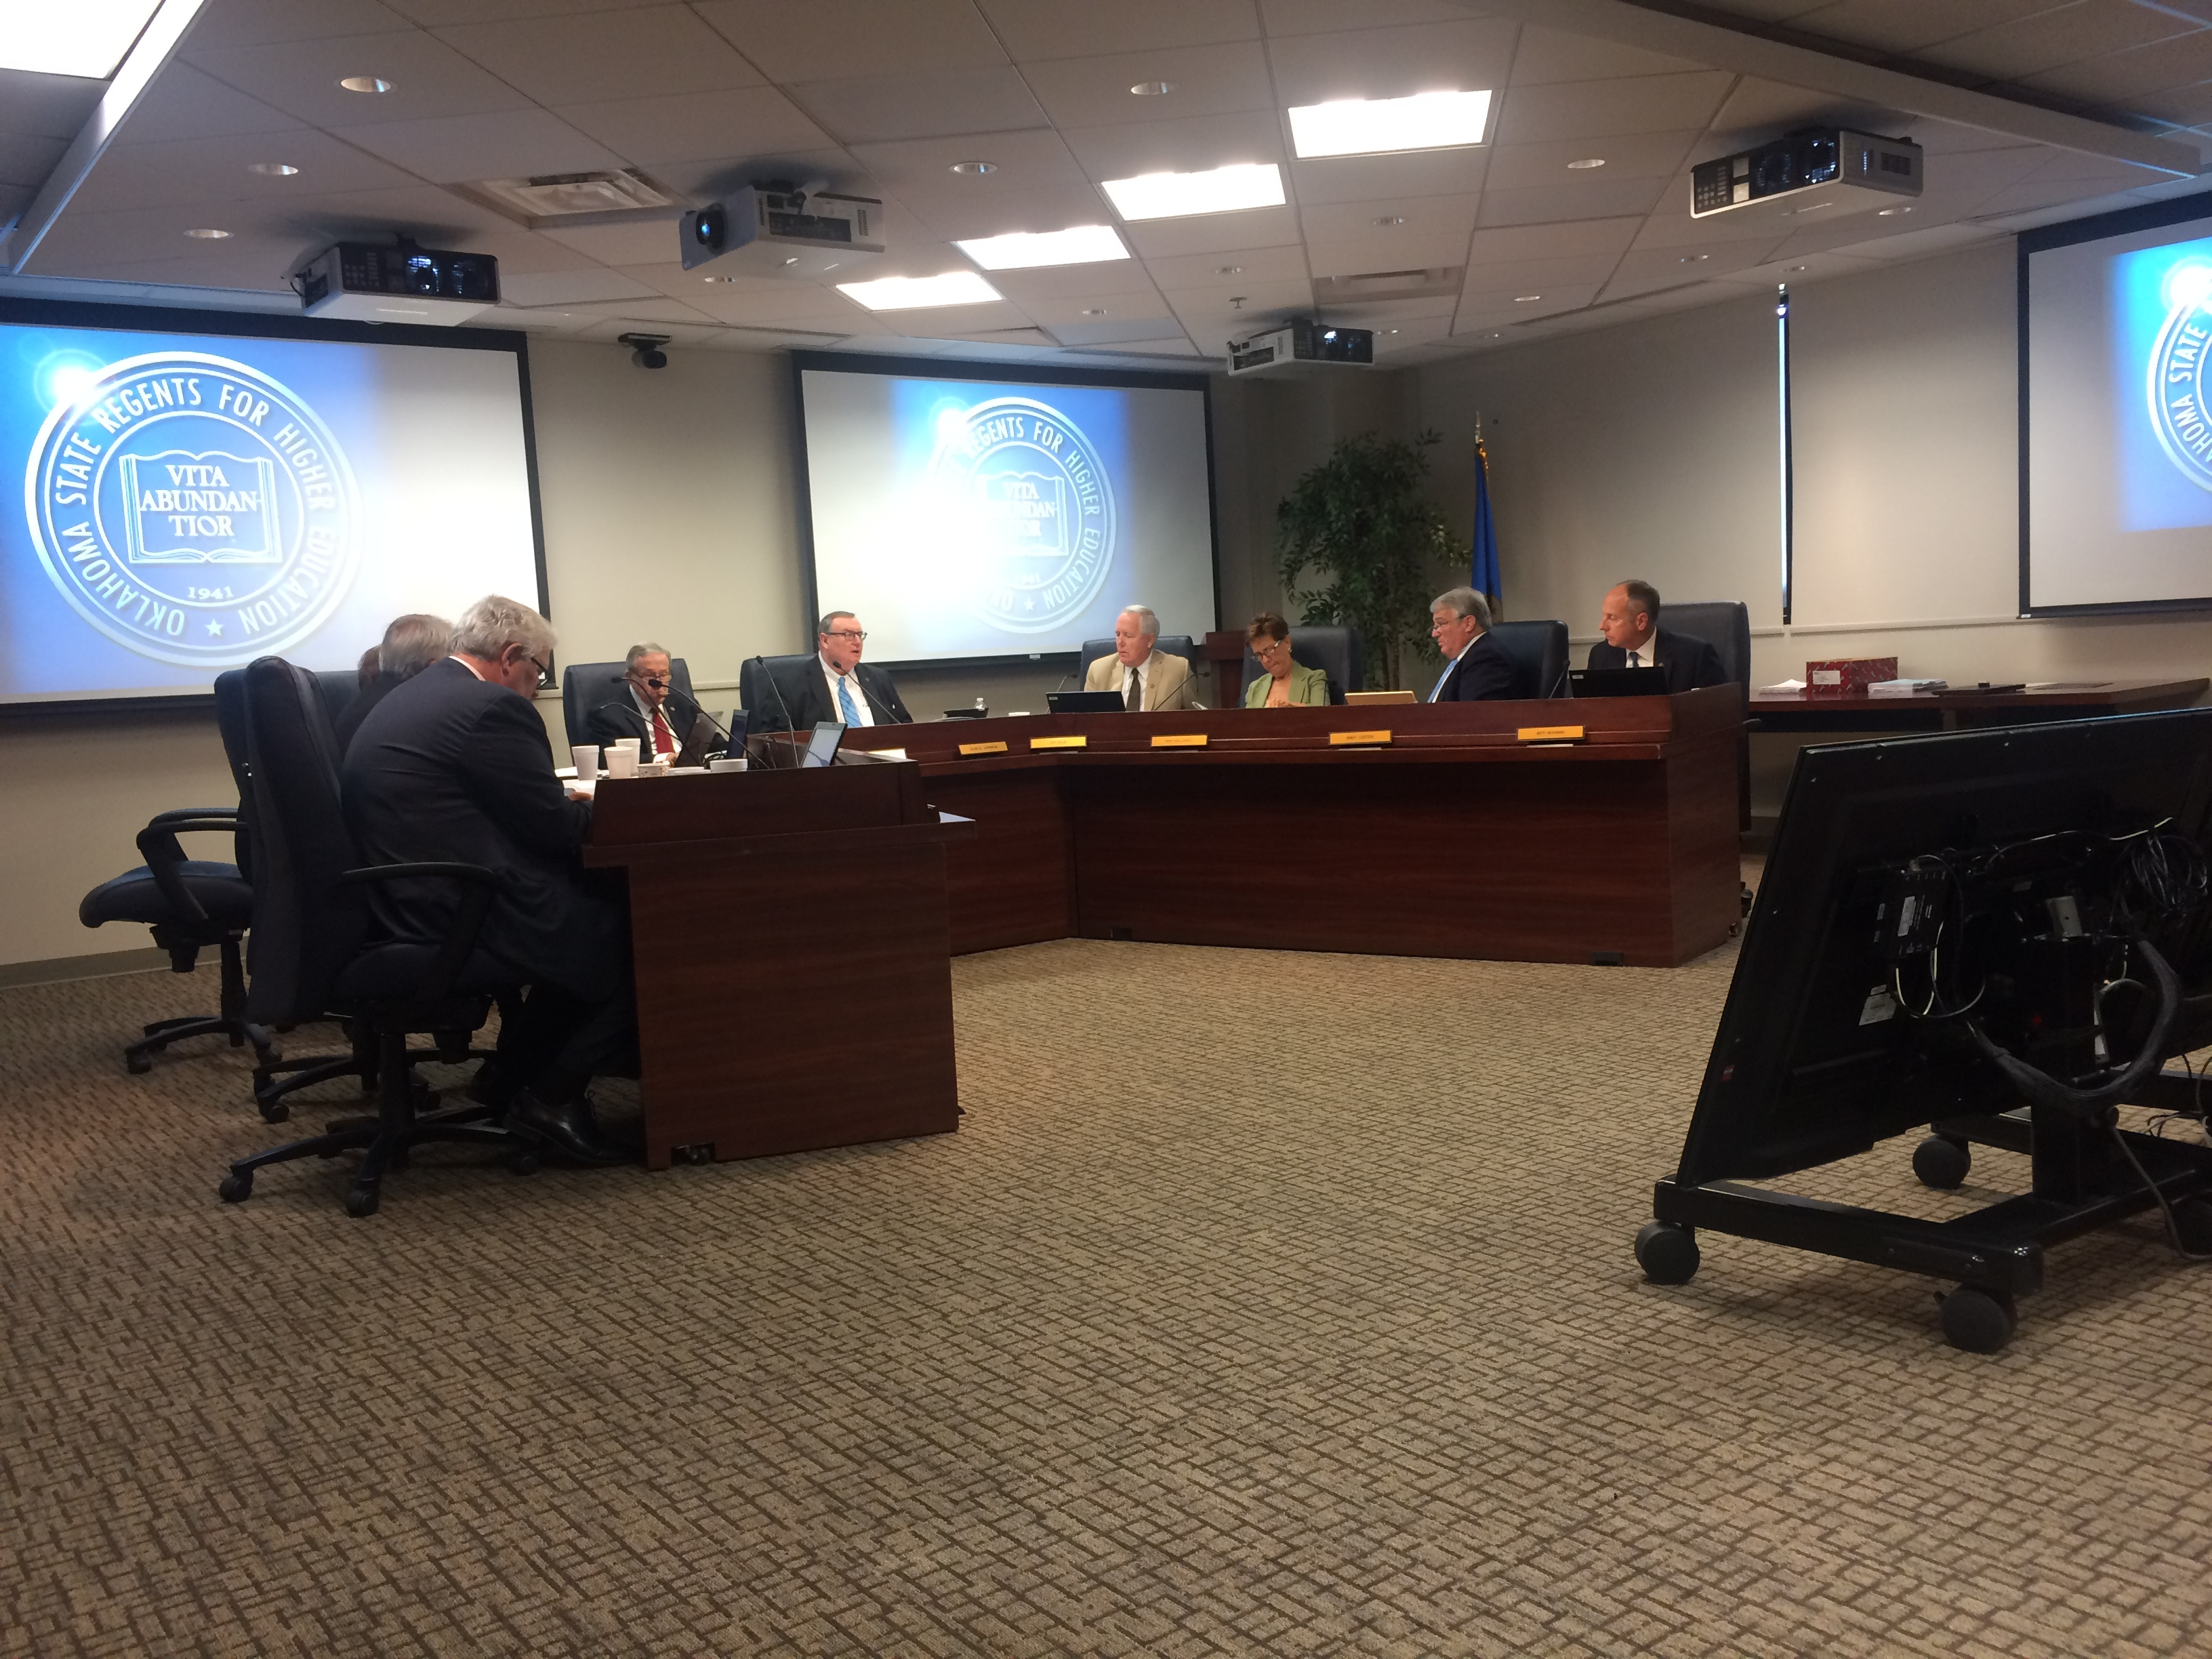 State Regents Meeting Saw Delays Over New Budget